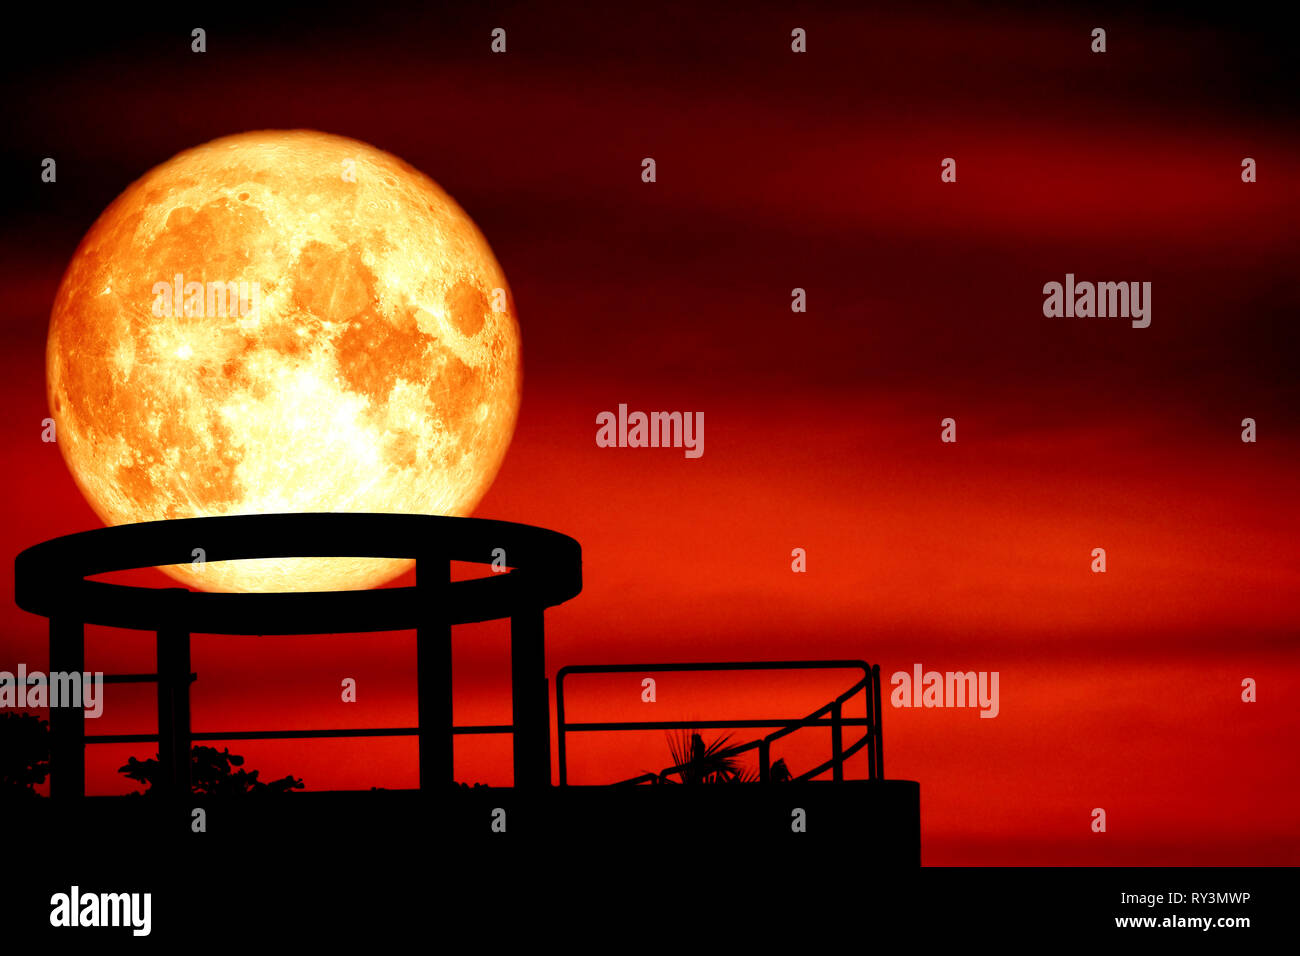 blood moon back over silhouette cycle on roof of building and night red sky cloud, Elements of this image furnished by NASA - Stock Image